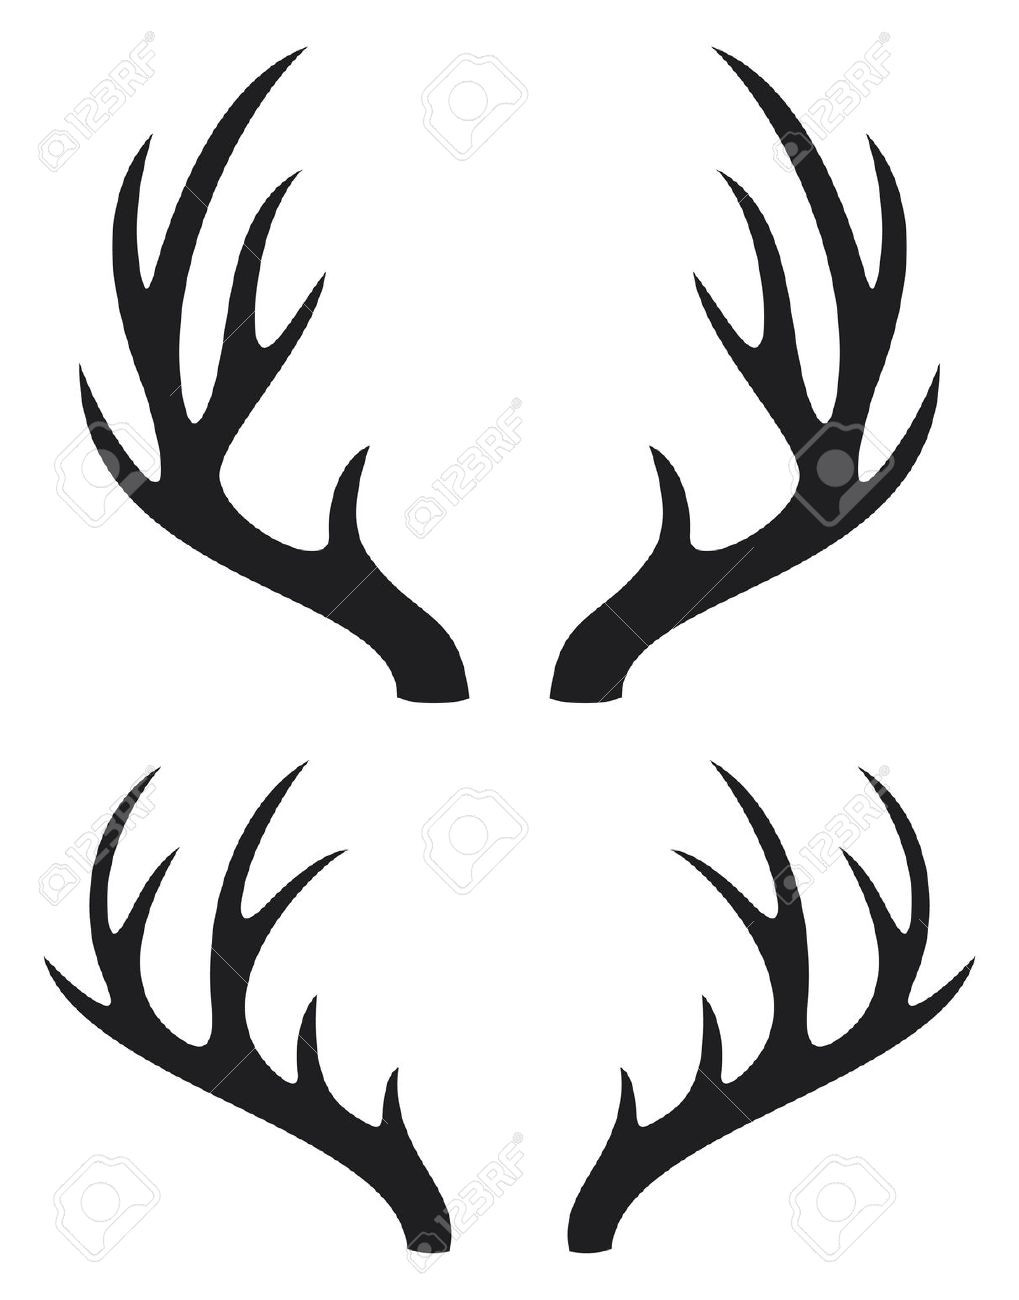 1019x1300 Silhouette Vector Deer Antler Clipart Panda Free Images Showy